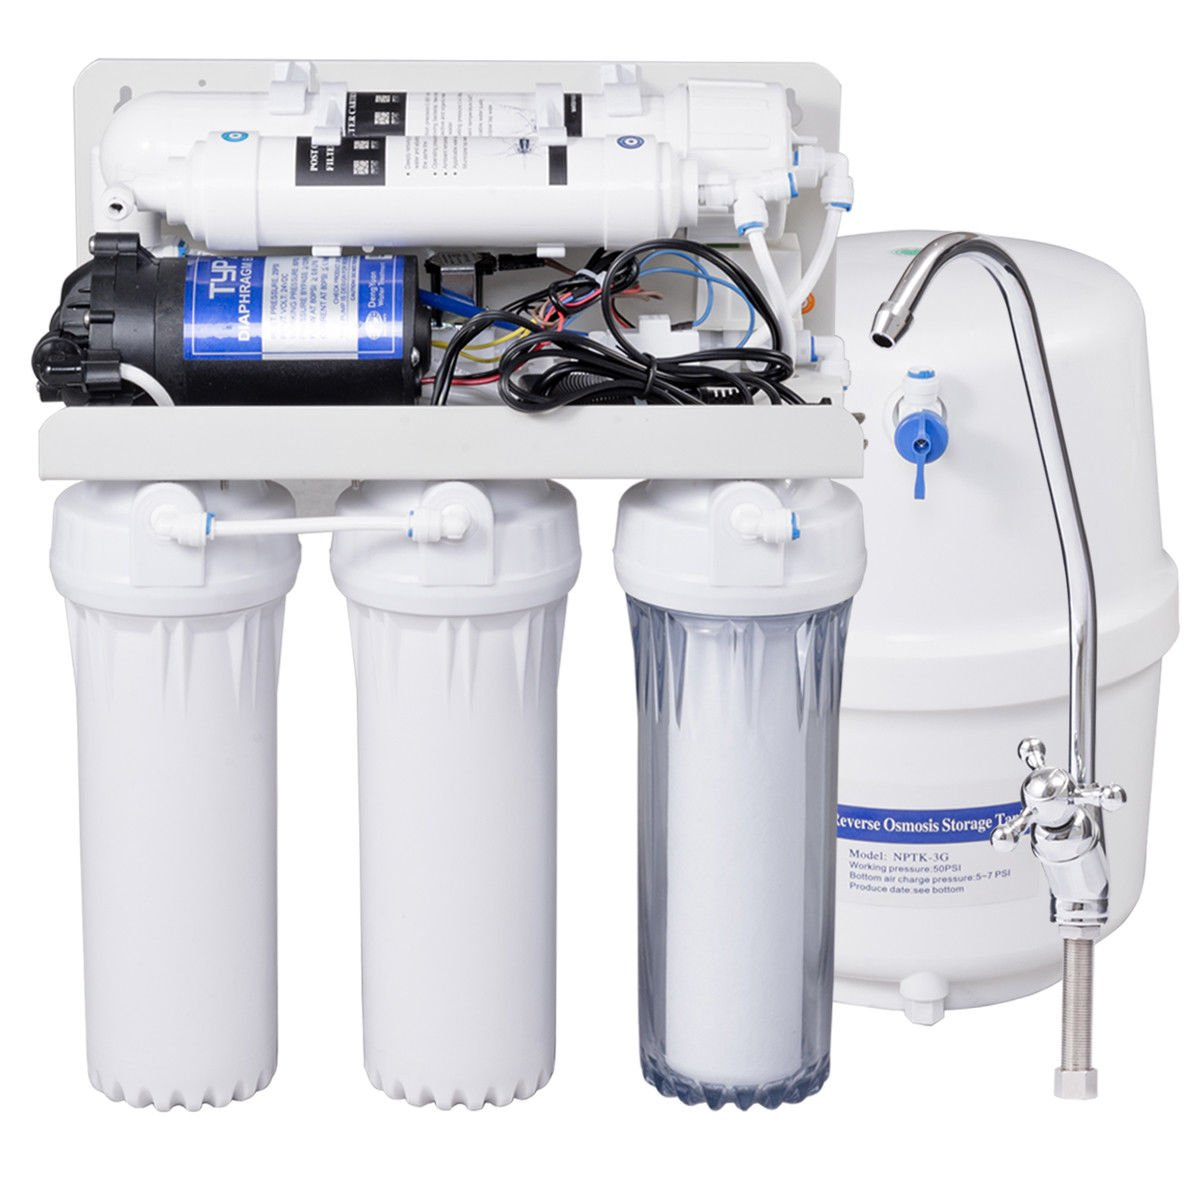 Costway 5-Stage Reverse Osmosis Water Filtration System Ultra Safe Under Sink Home Drinking Water Filter System